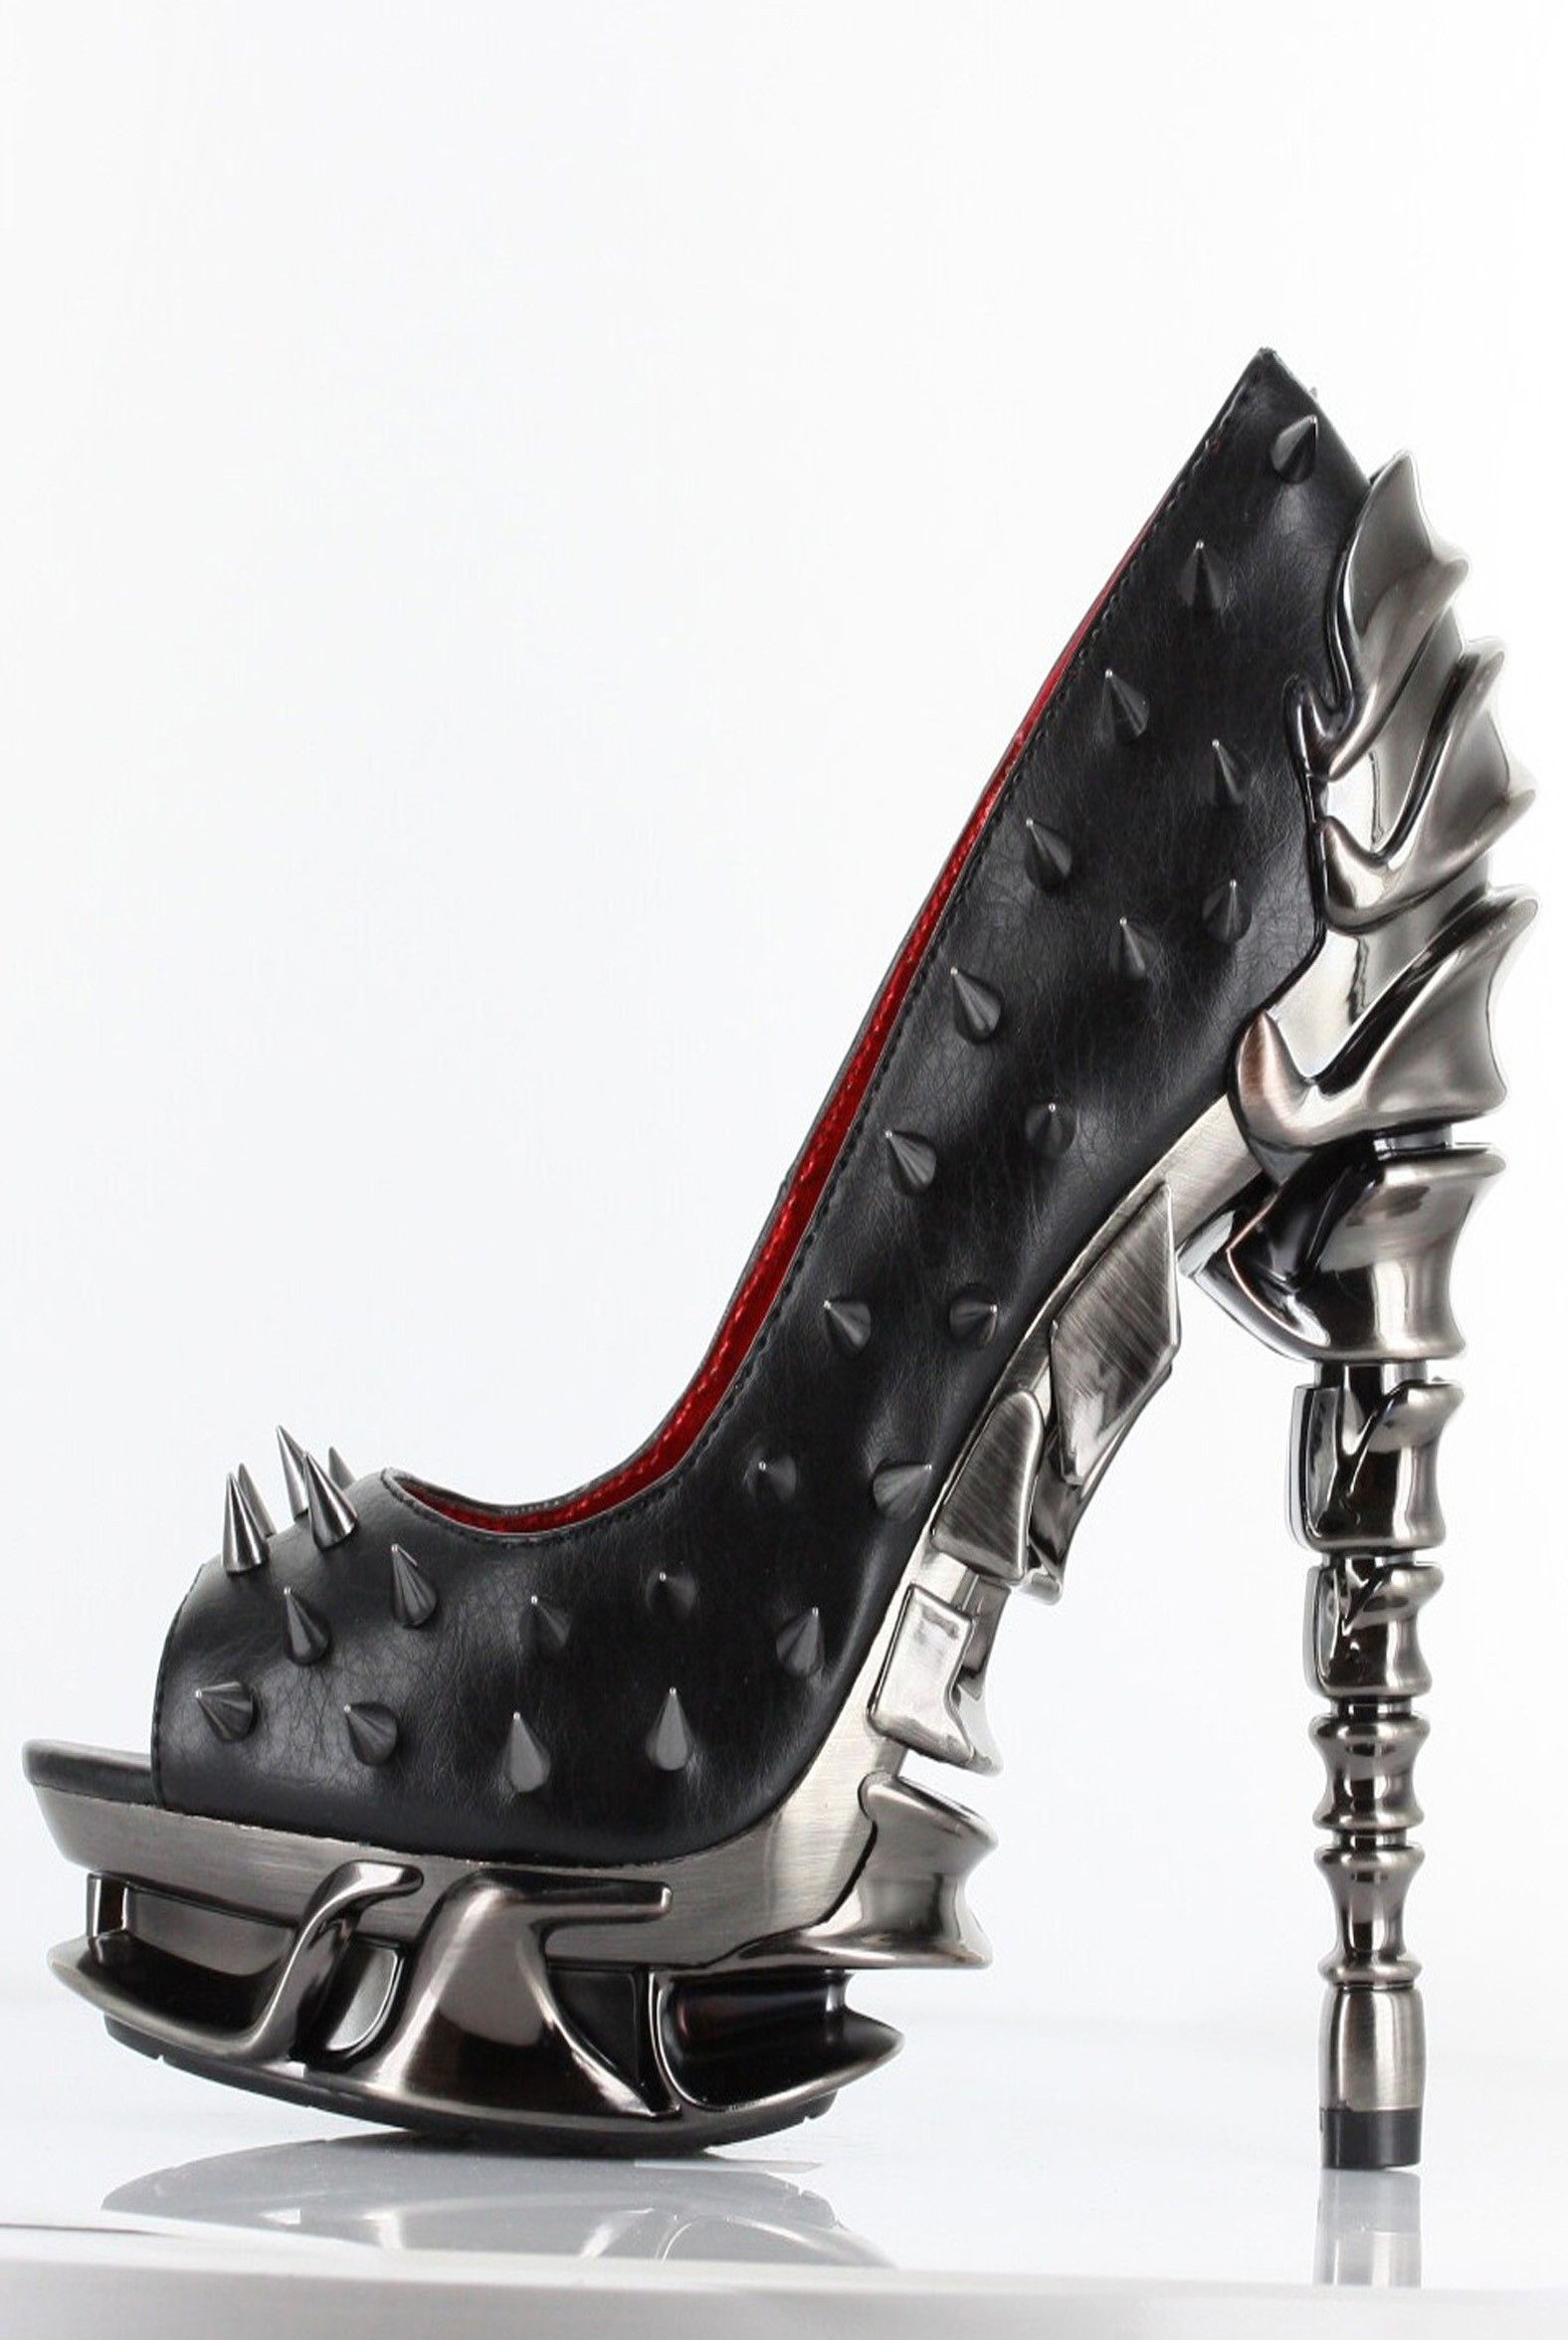 Hades Shoes - Talon - Black - Metal Goth Alternative Cyber